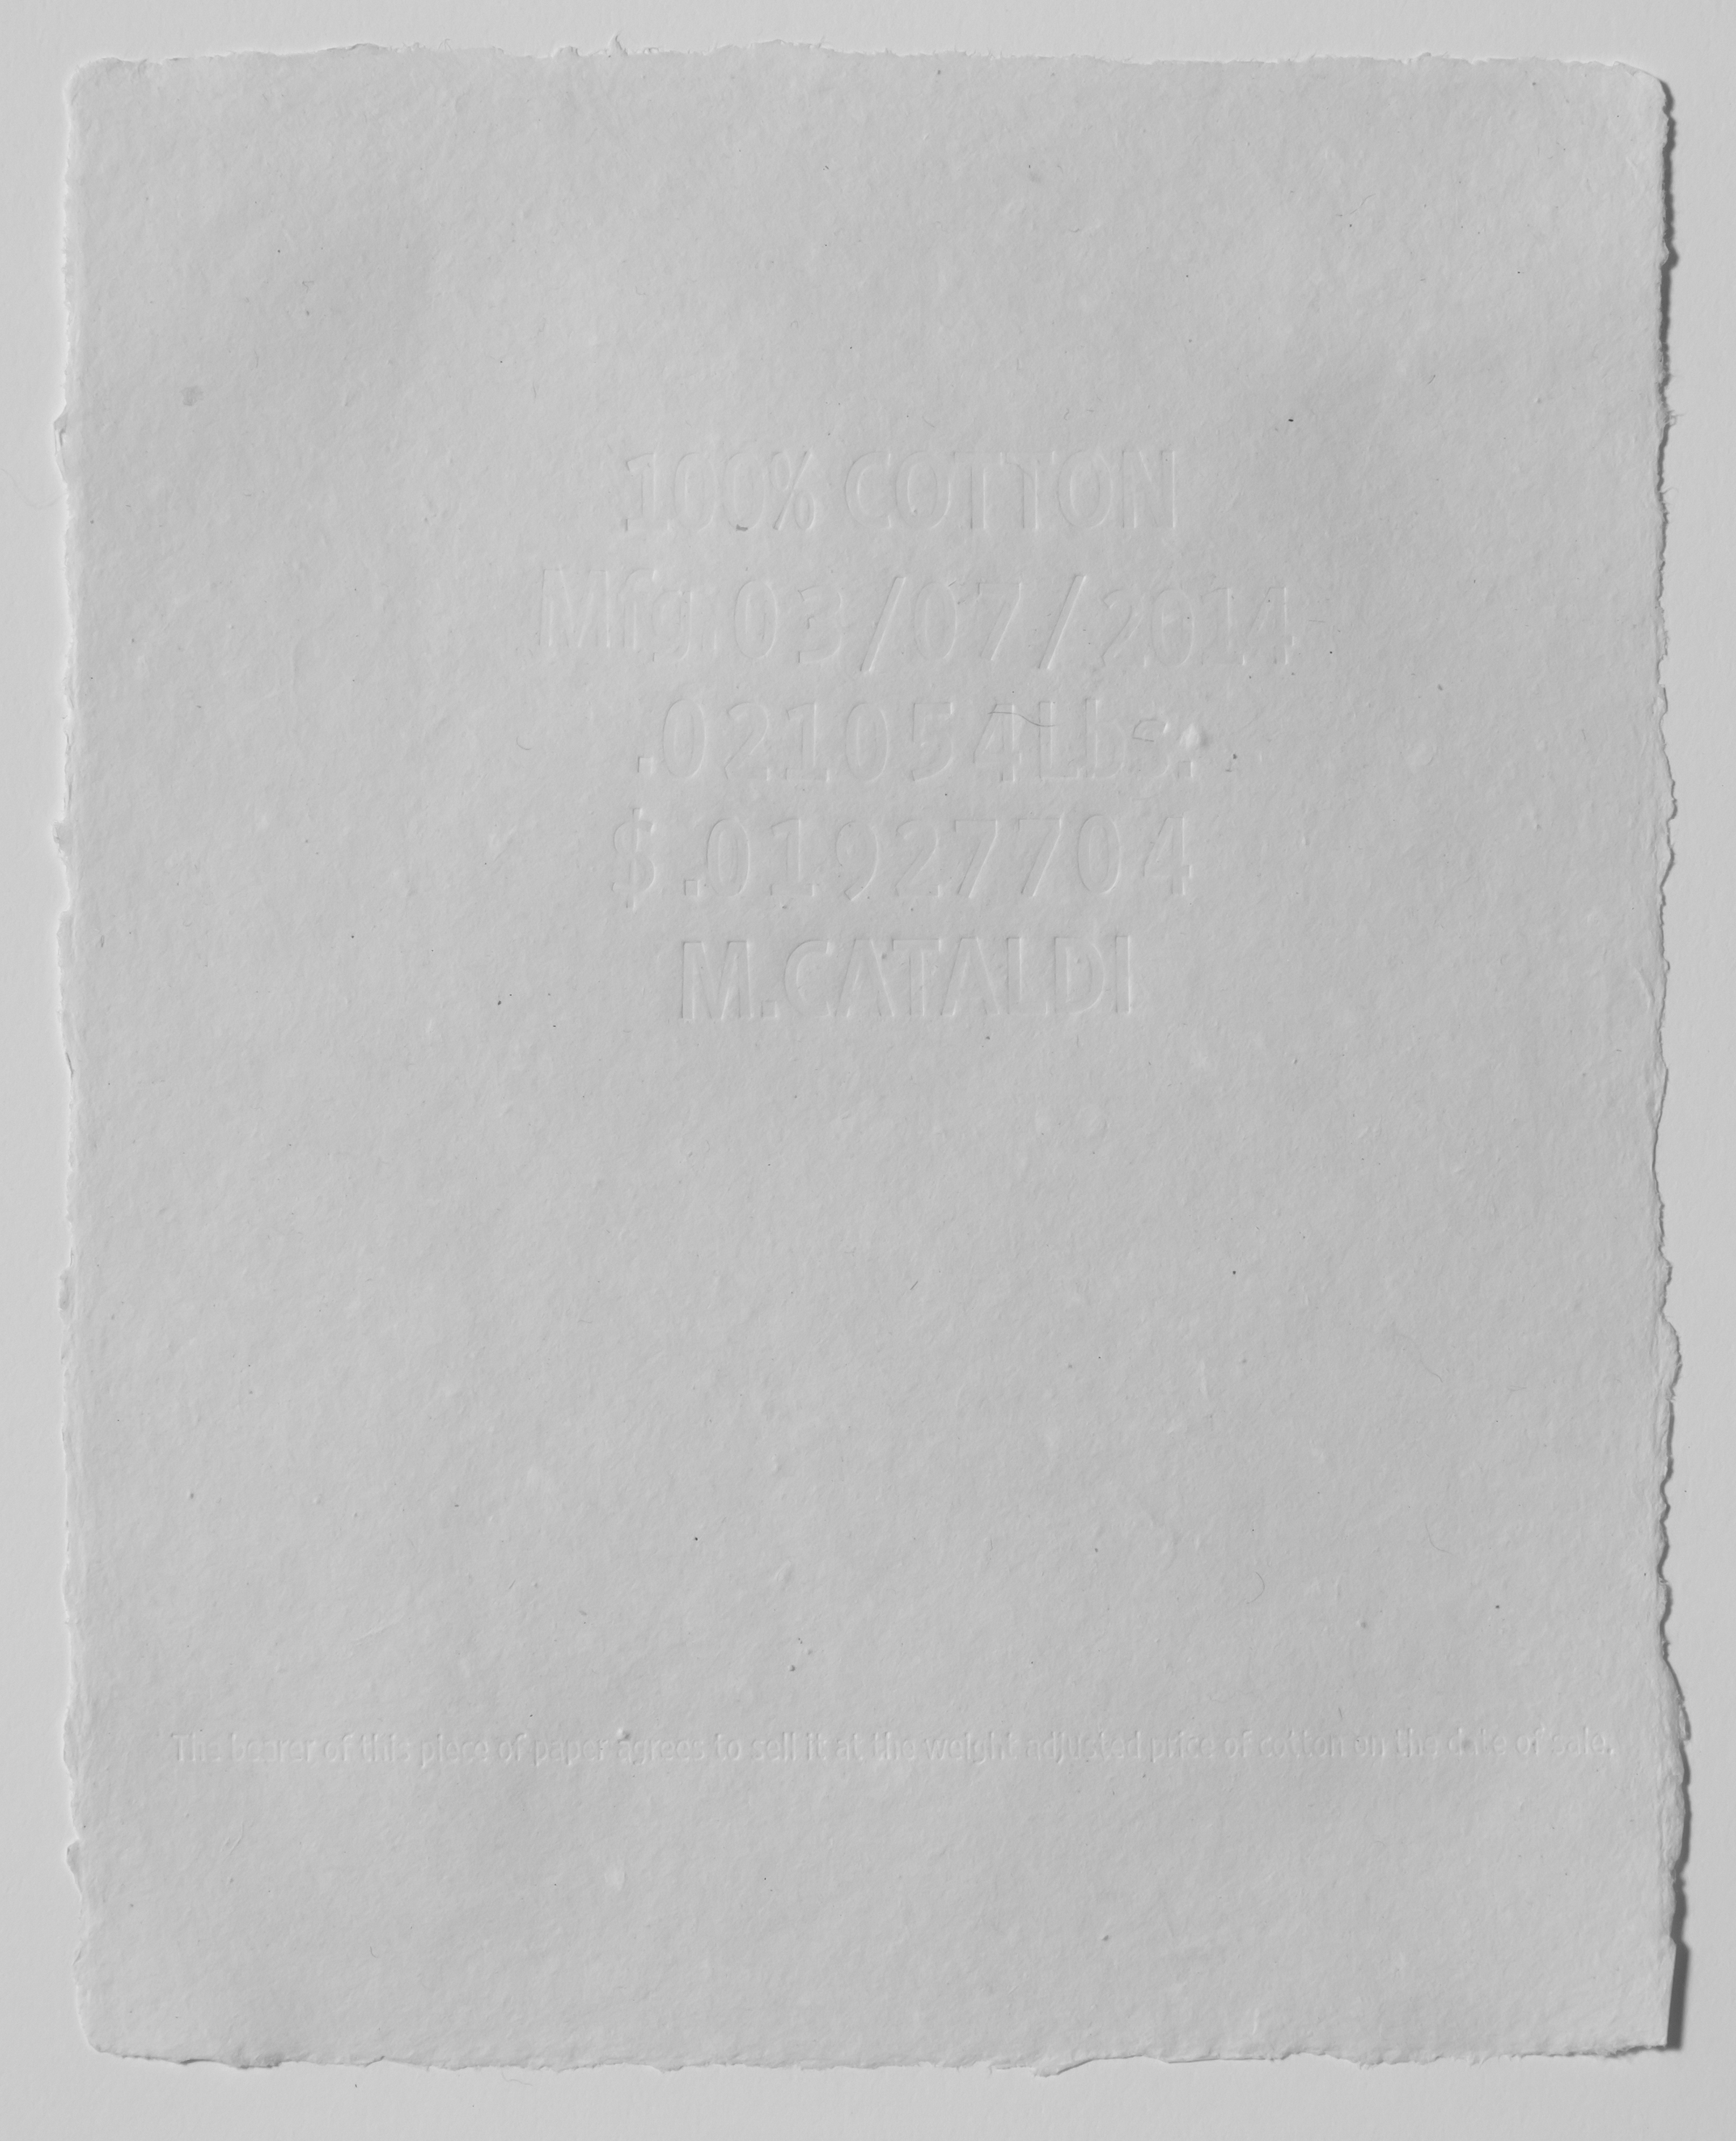 $.01927704 , 03/07/2014   100% cotton paper. 8 x 10 in.